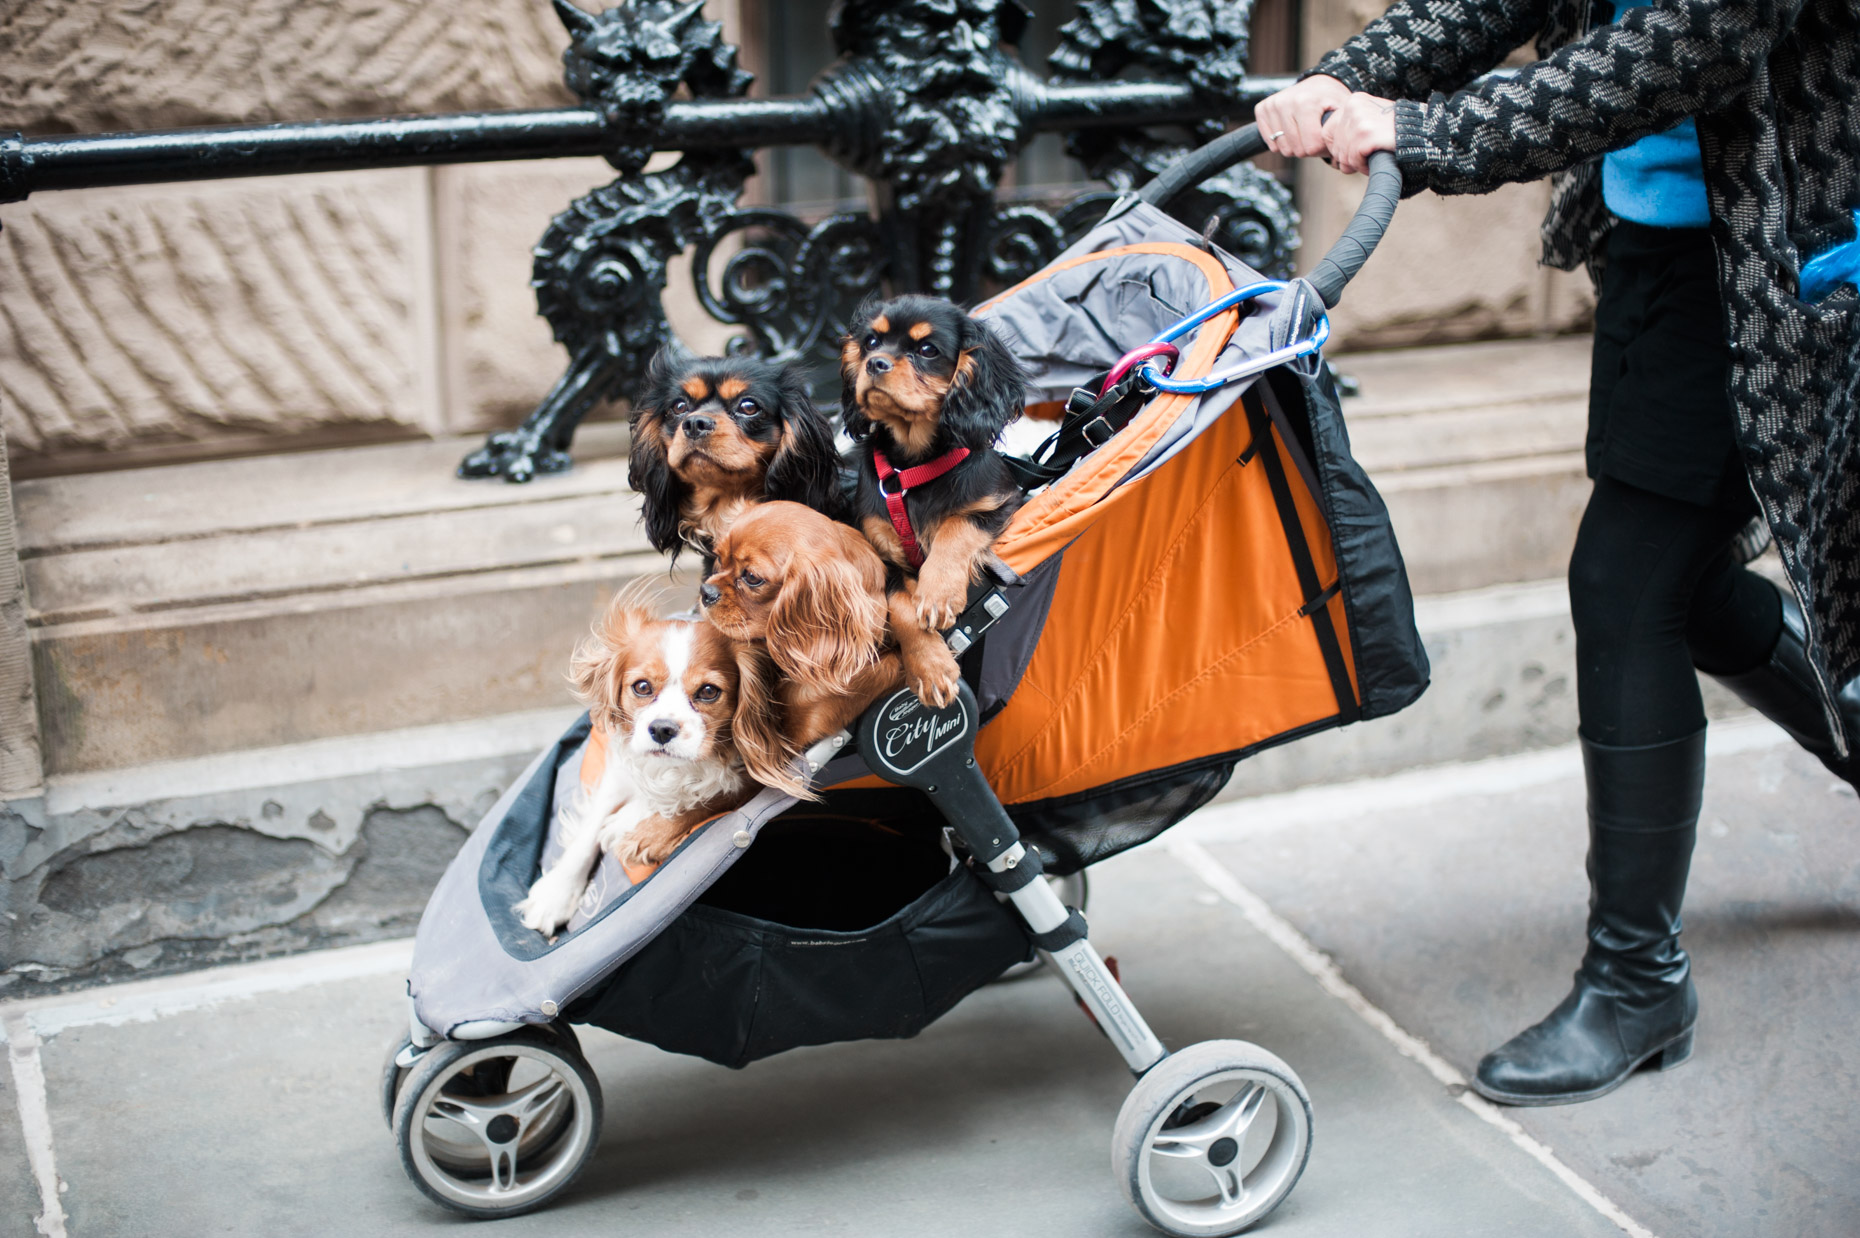 Small puppies are taken for a ride in a Pram on the upper west side of New York City